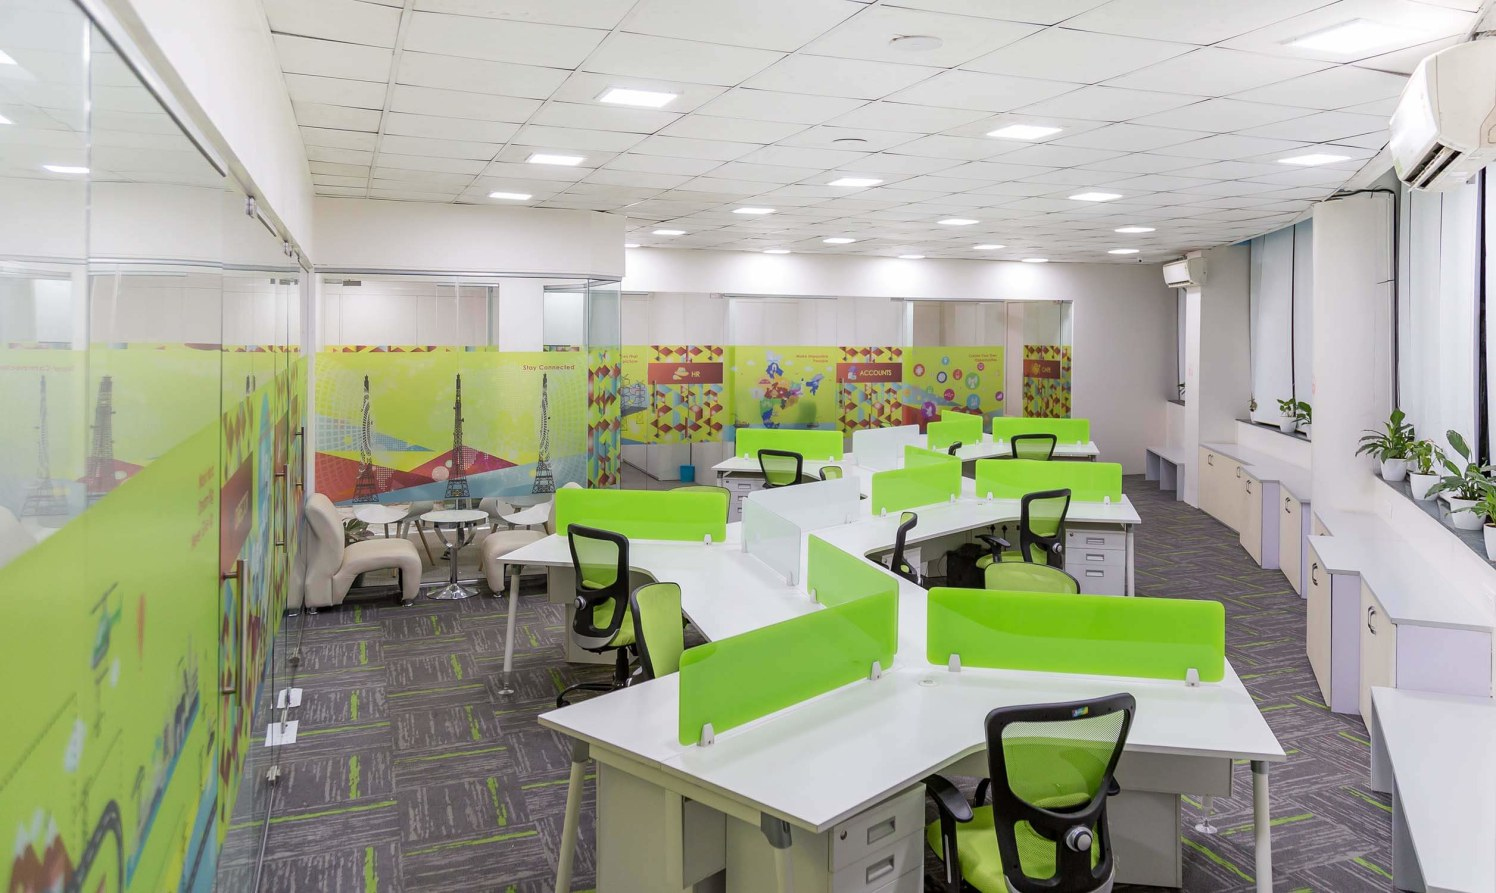 Green and White Themed Work Space with White Desks and green Chairs by Trupti Ladda Contemporary   Interior Design Photos & Ideas